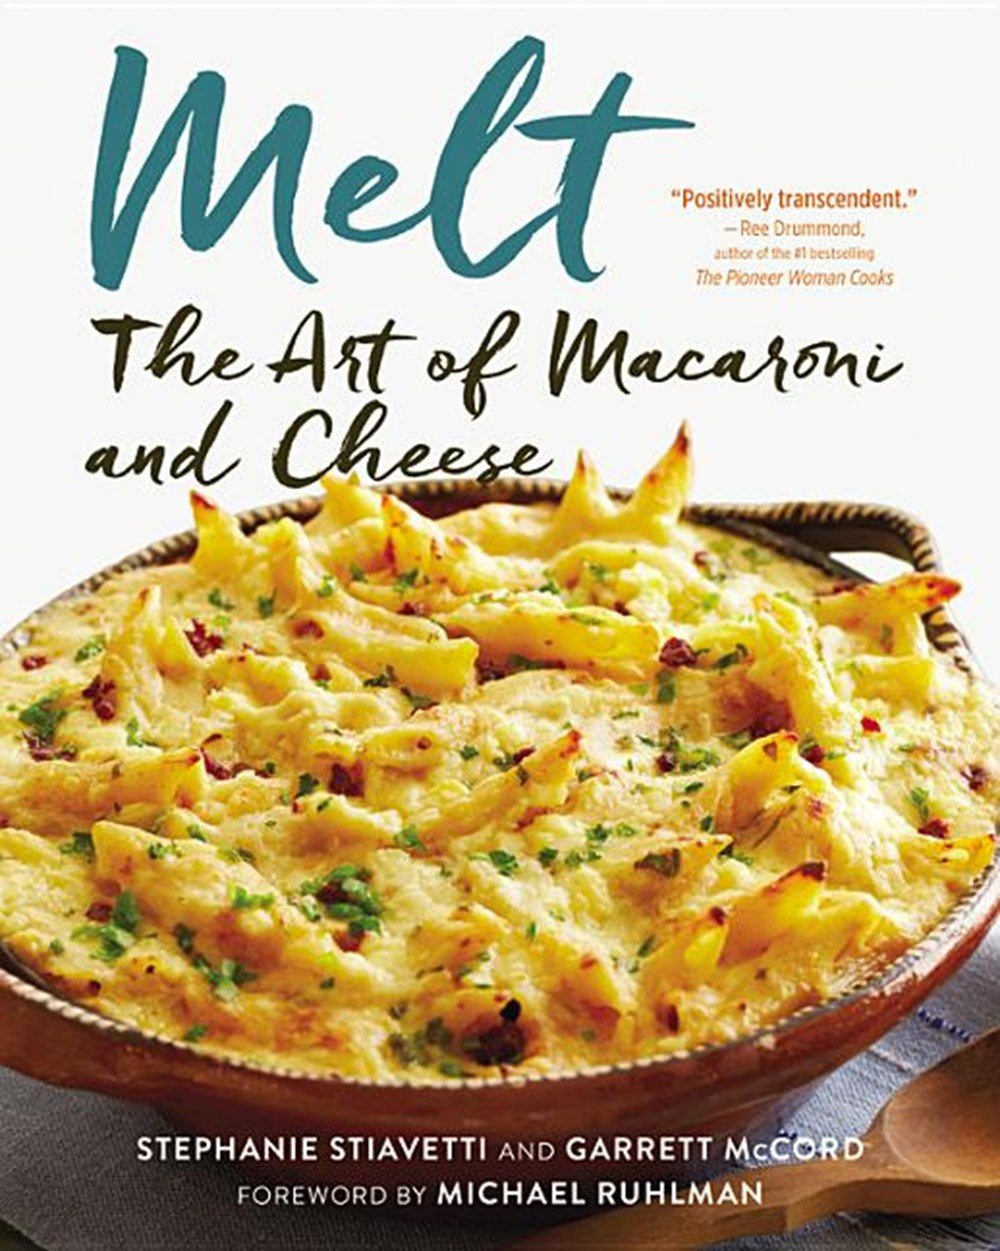 Melt The Art of Macaroni and Cheese: The Art of Macaroni and Cheese